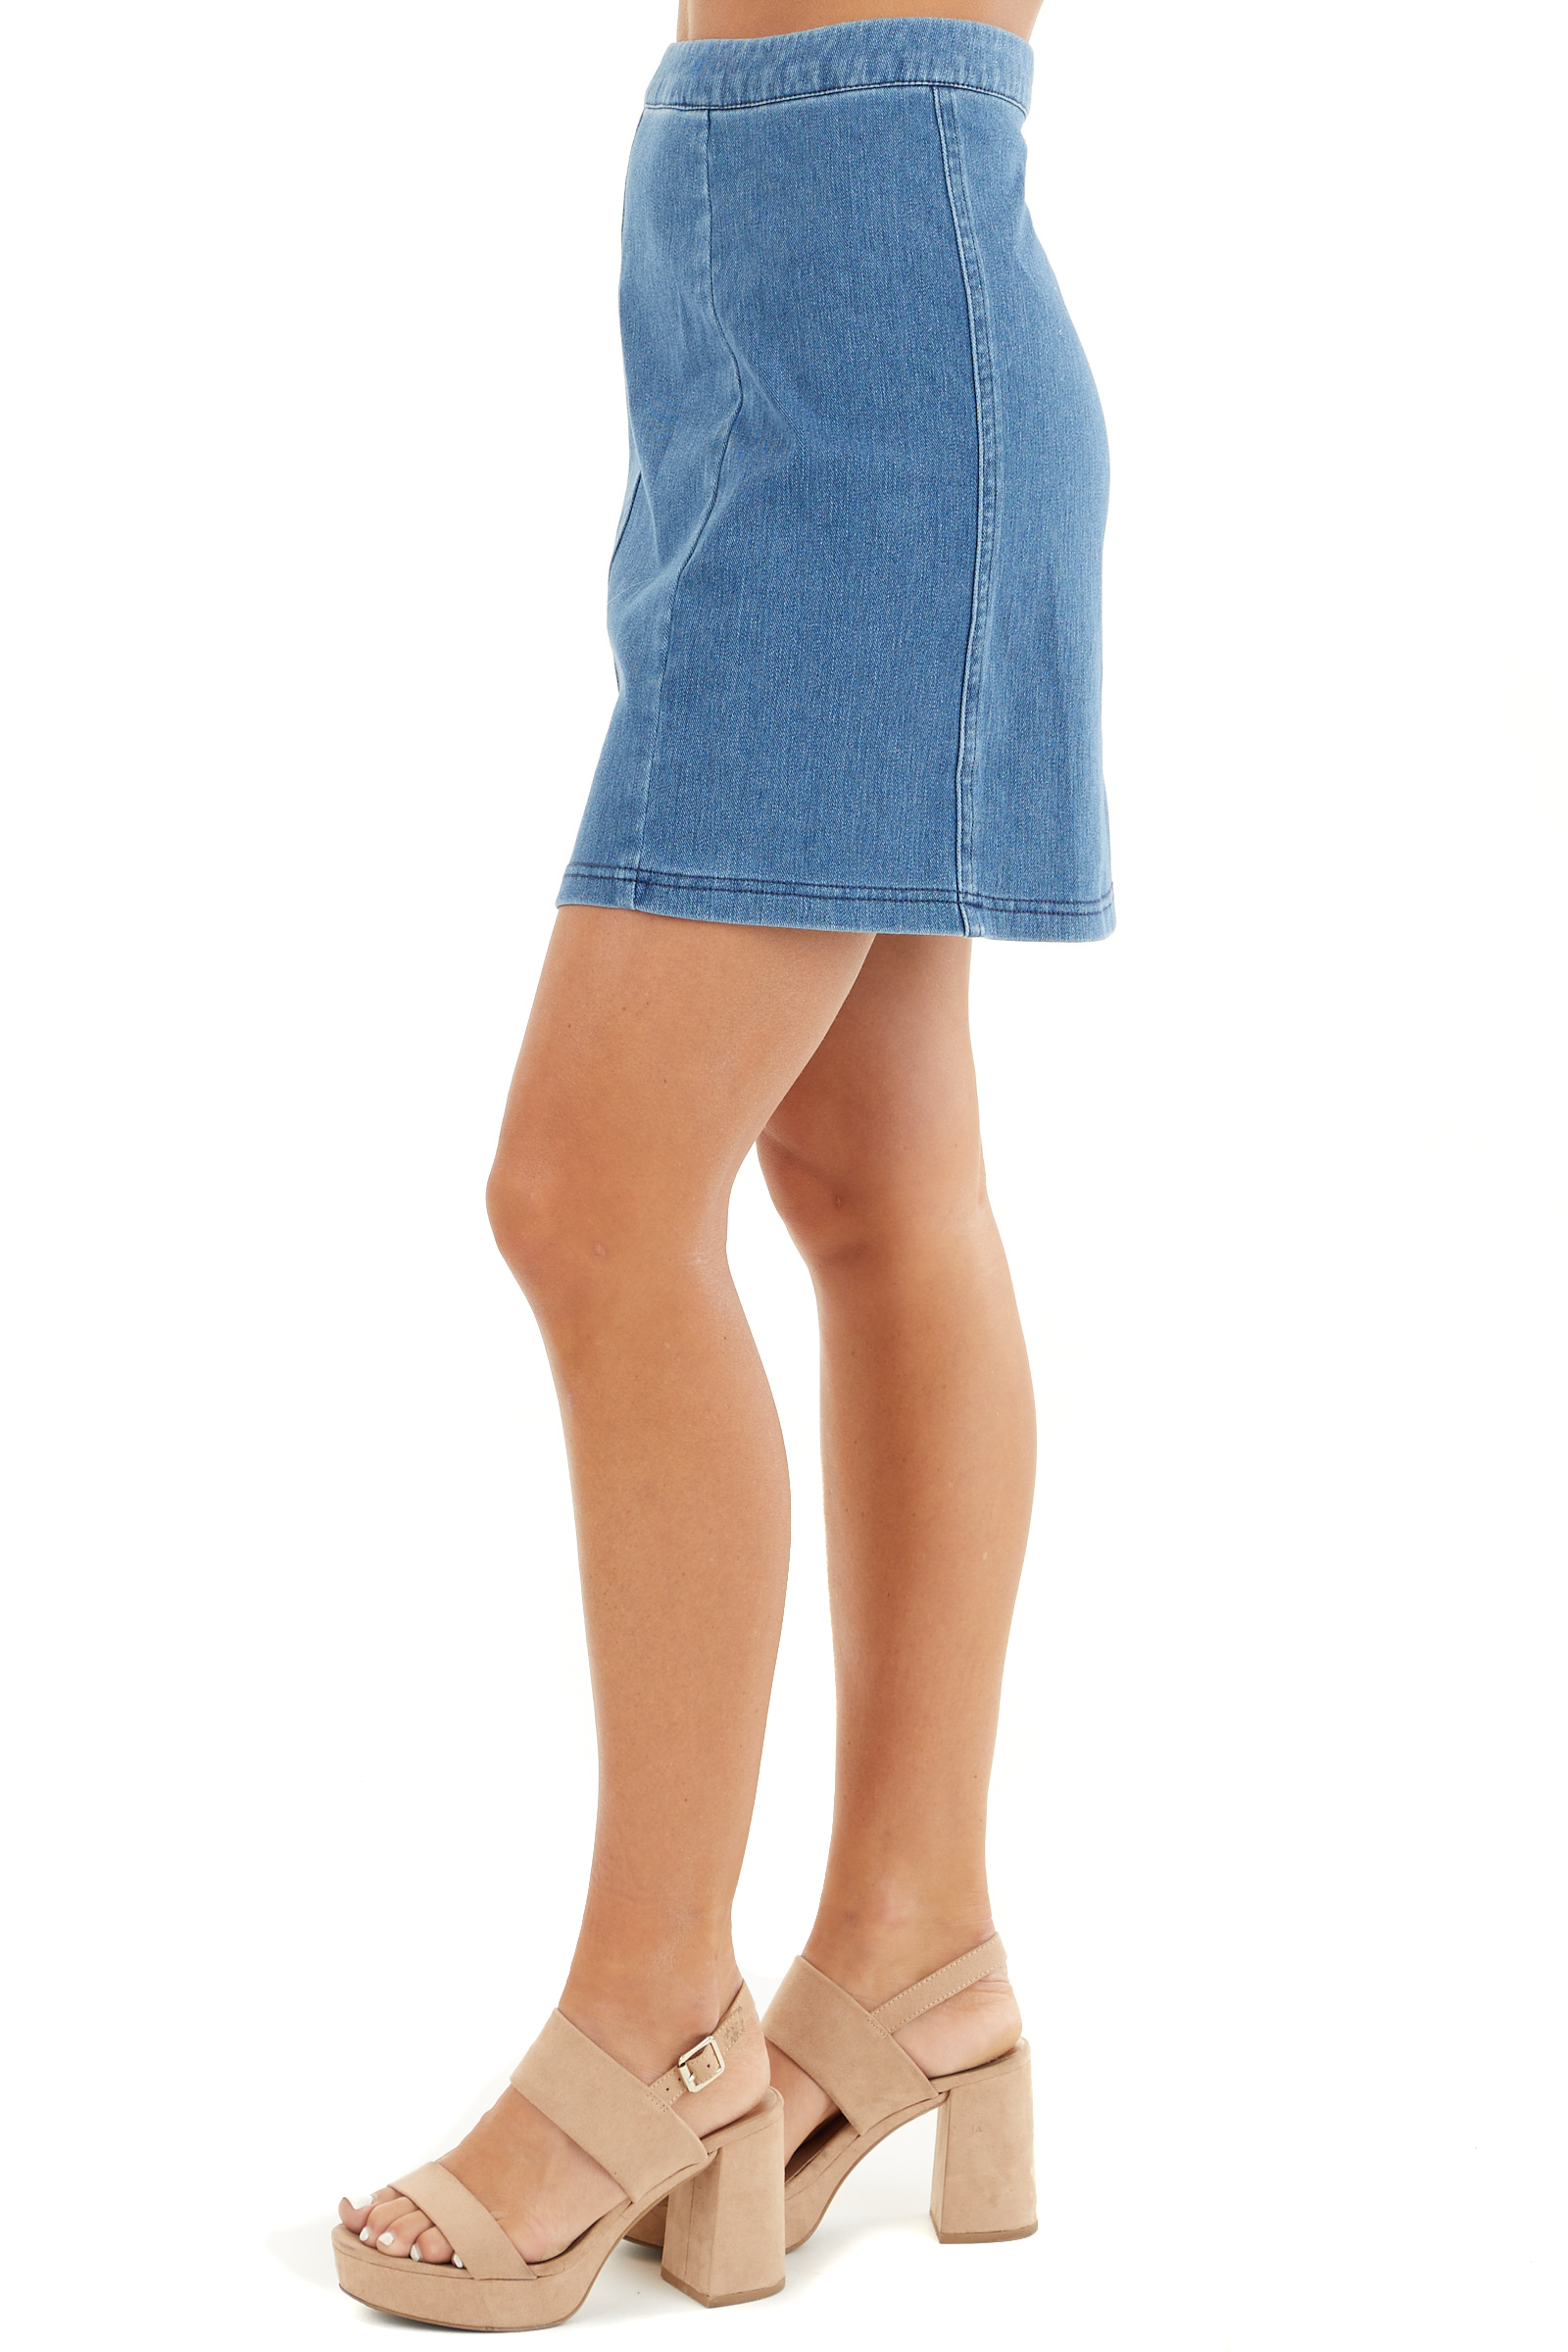 Denim Blue Zip Up Stretchy Mini Skirt side view